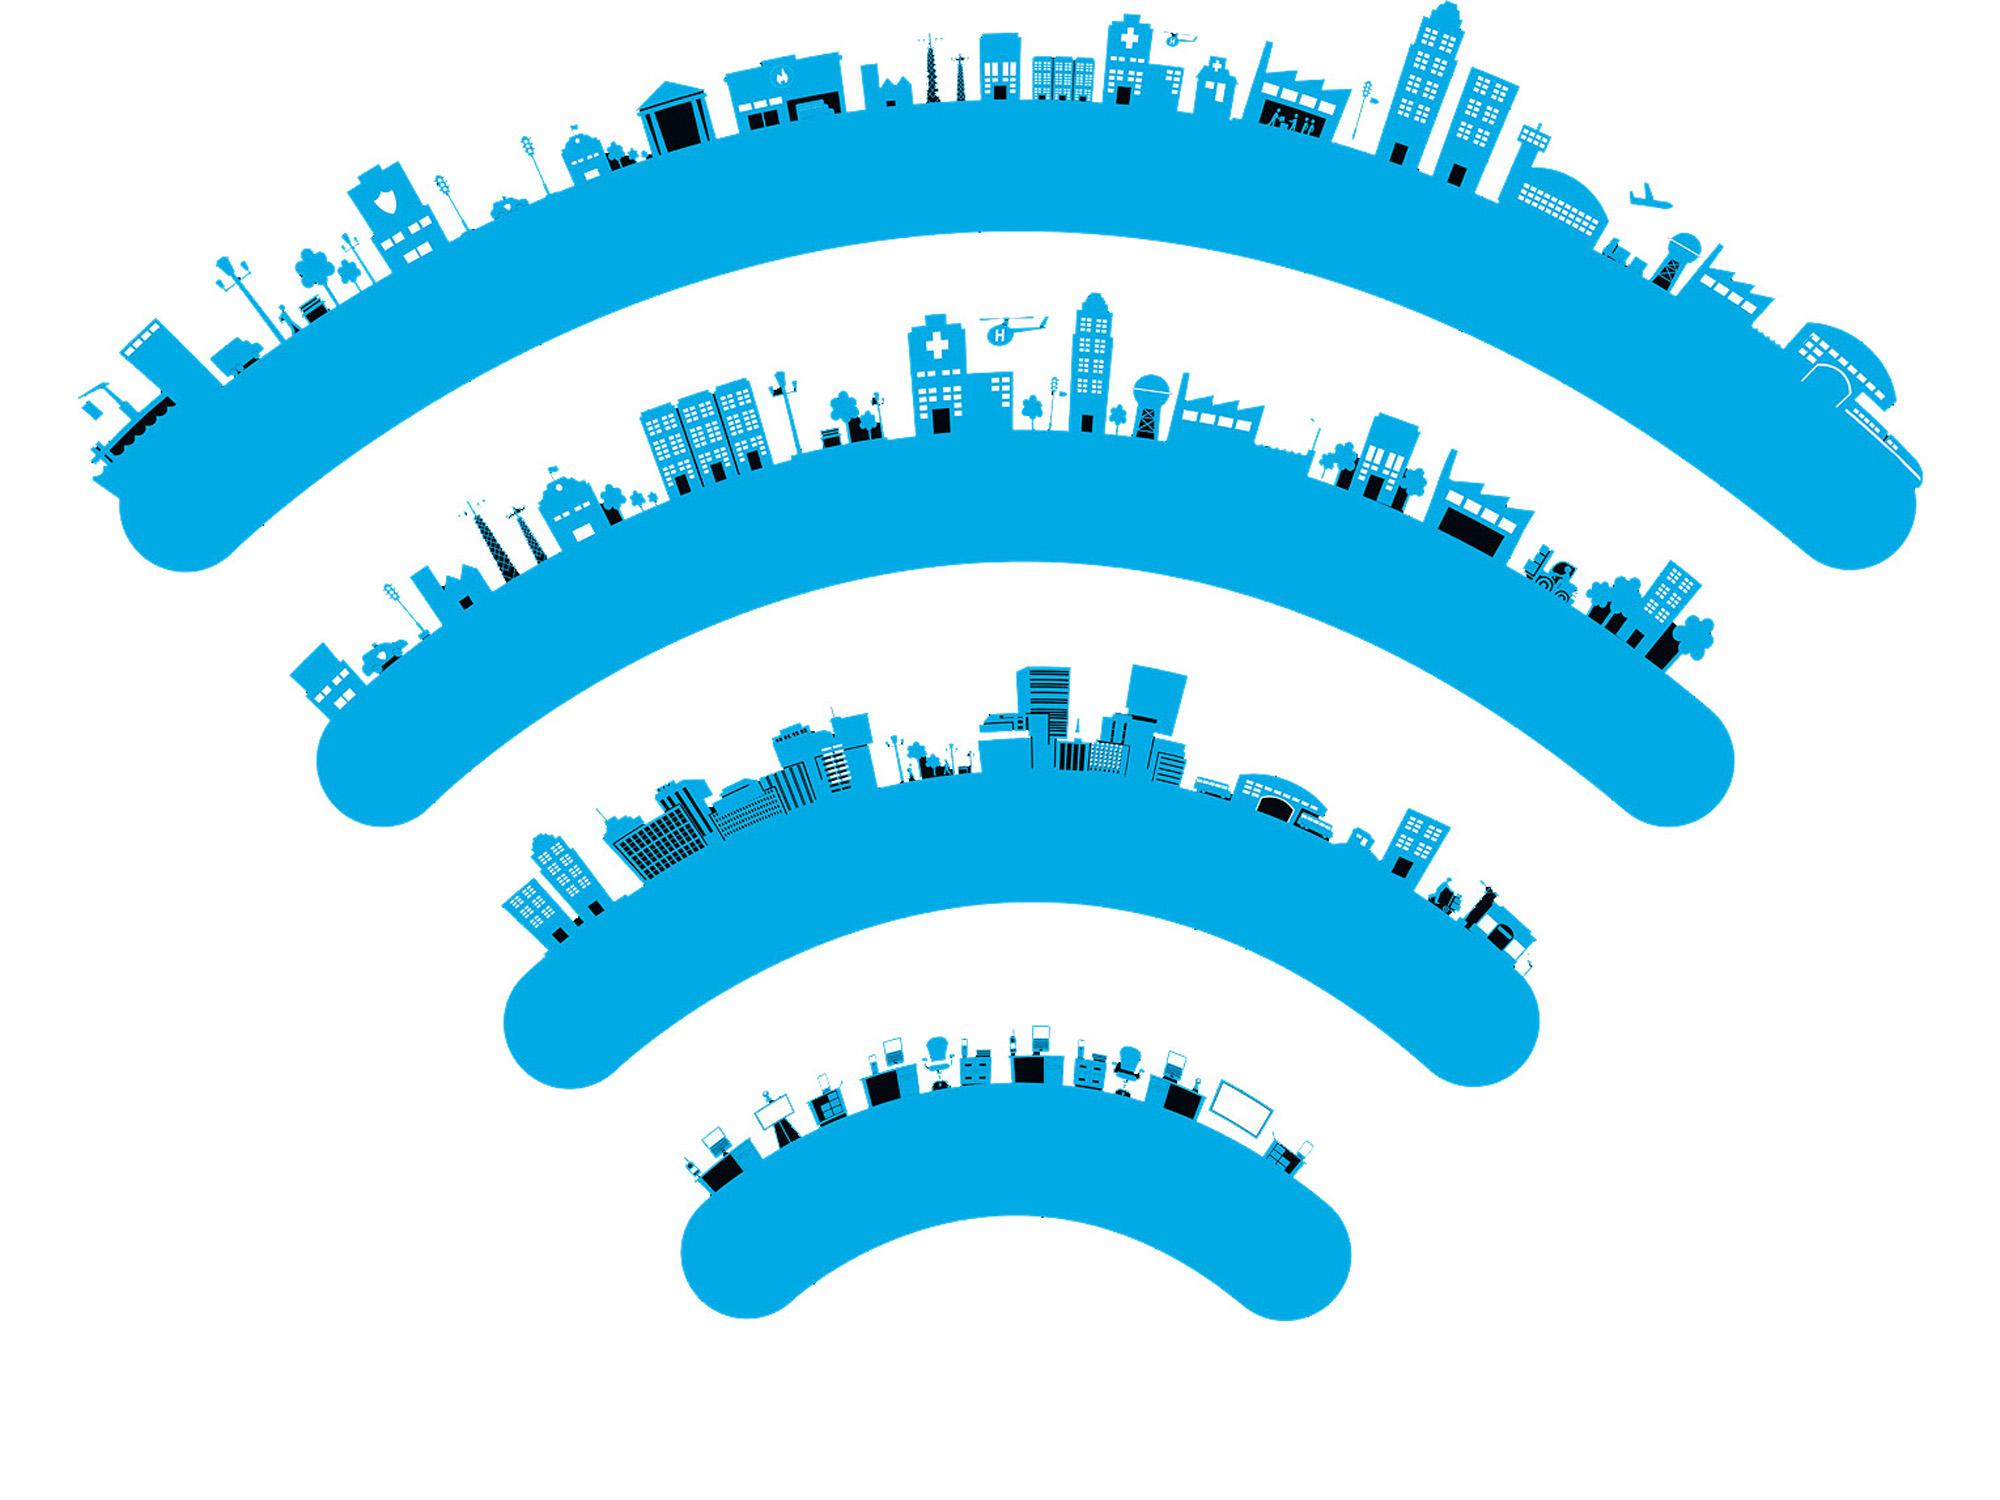 We Can Come Up With A Wi Fi Solution Whether It Is In A Small Home Office,  A Large Building Or An Entire City Block.